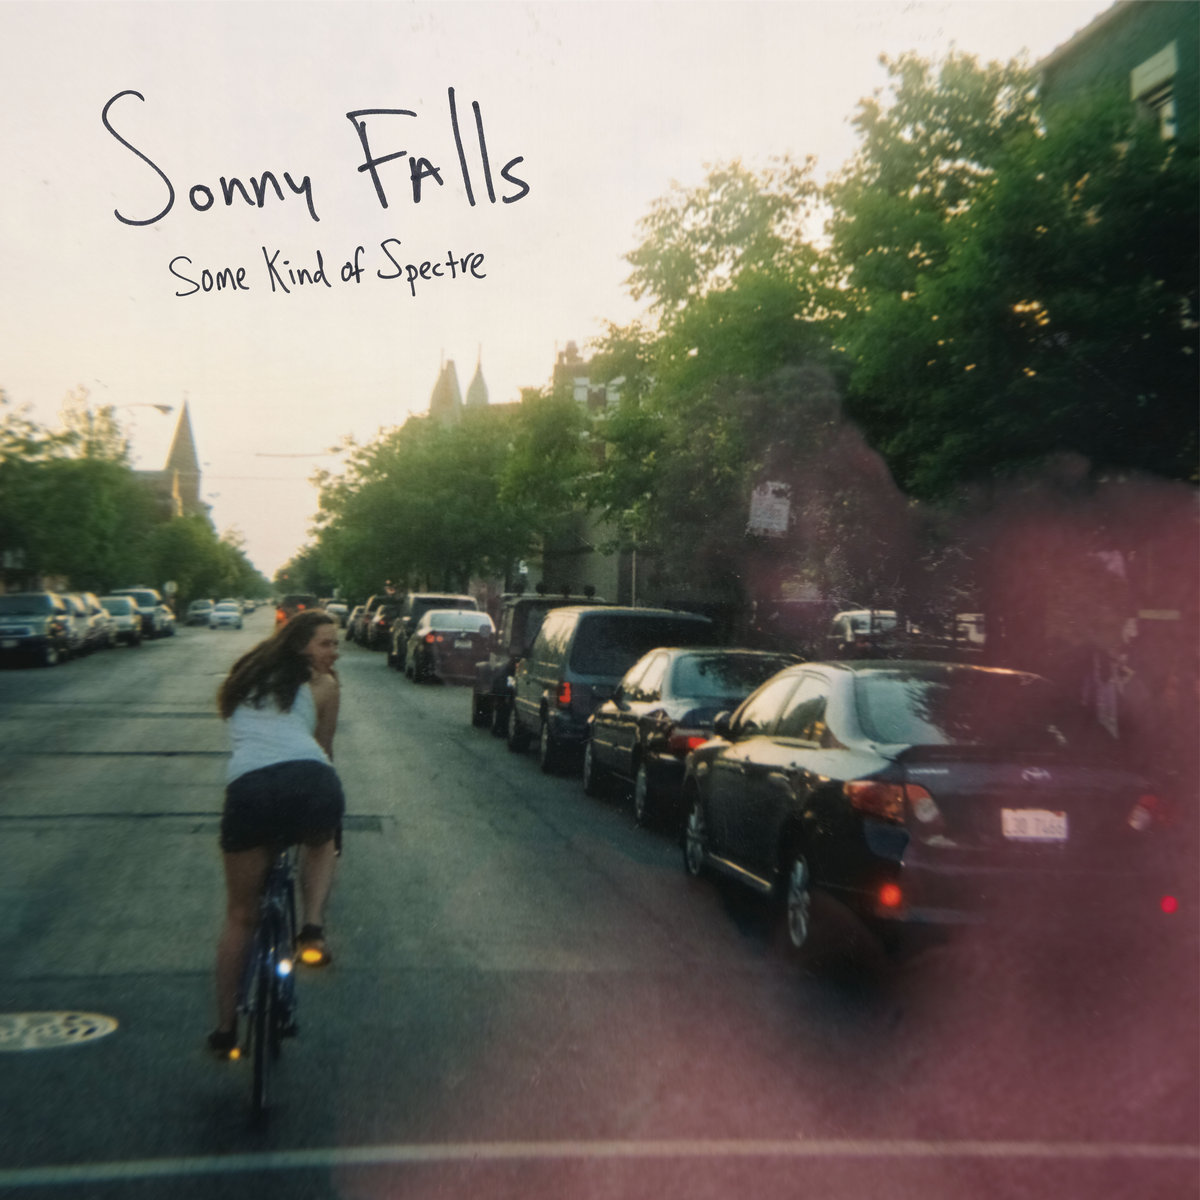 Sonny Falls - Some Kind of SpectreAugust 17thLaid back and loose just like the season, local rockers Sonny Falls dropped a quietly great record at the end of the summer that made for many a late night headphone jam session. Some Kind of Spectre is a record that sneaks up on you, getting better and better with each listen. We spoke with them after the record dropped and Ryan Ensley and Anthony Santoro had a whole lot to tell us. They are hitting up Sub T on January 26th. Tix are only $8.-KPL